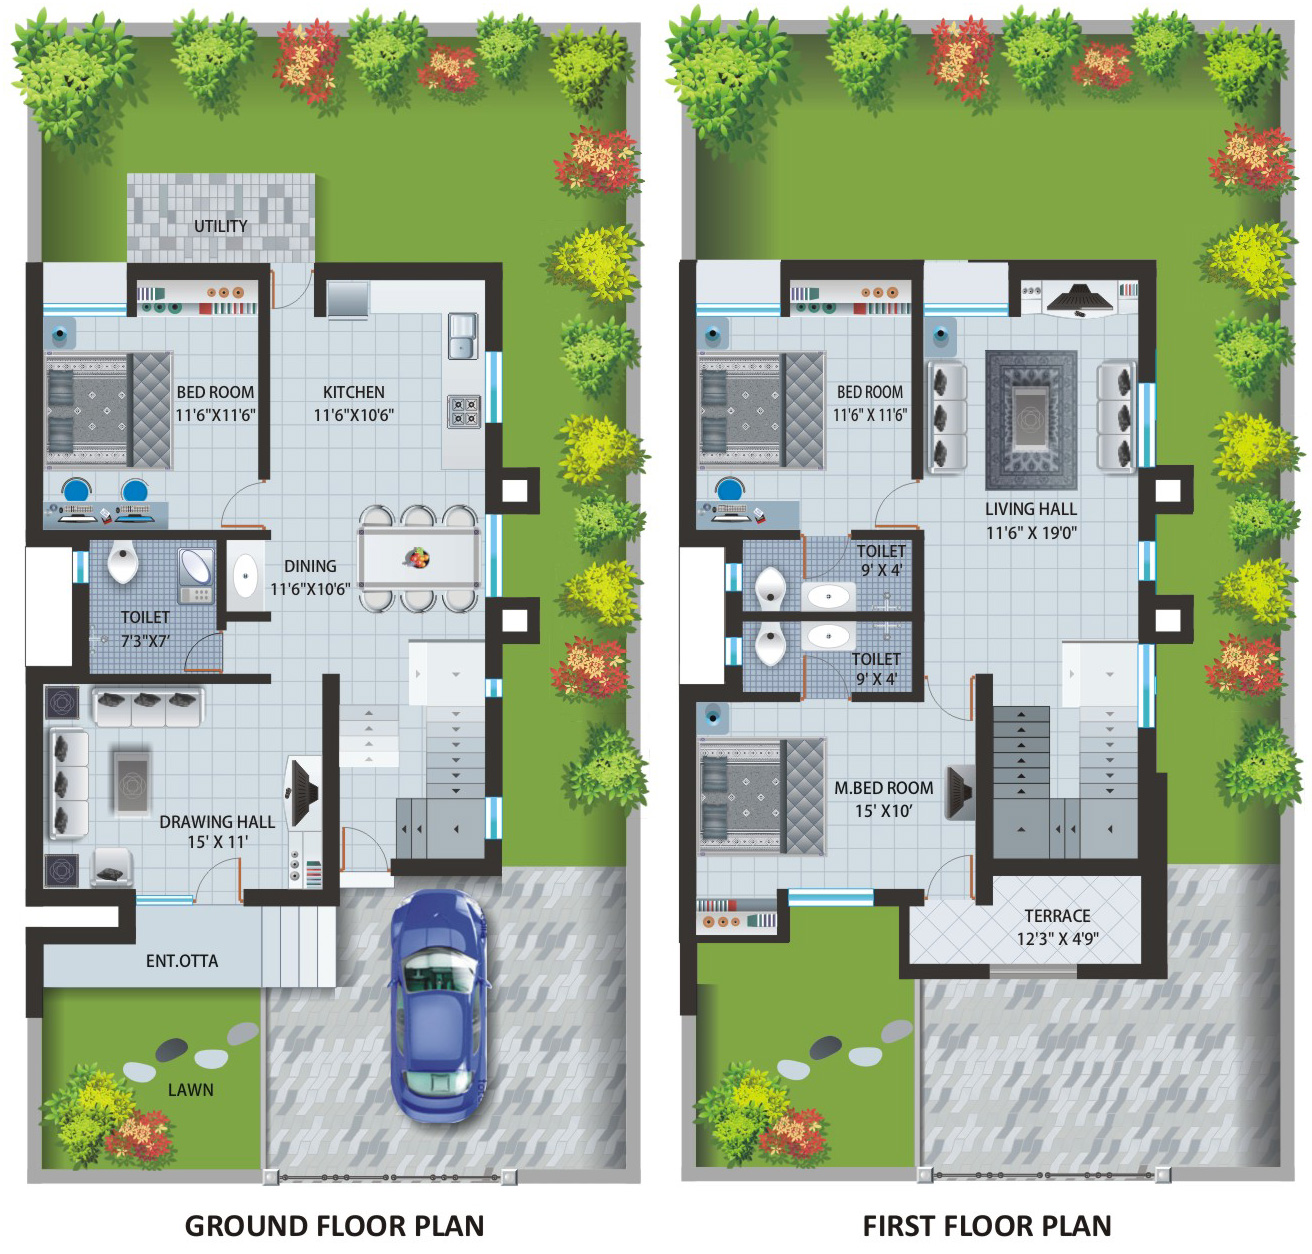 Outstanding Bungalow House Plans 1312 x 1254 · 535 kB · jpeg